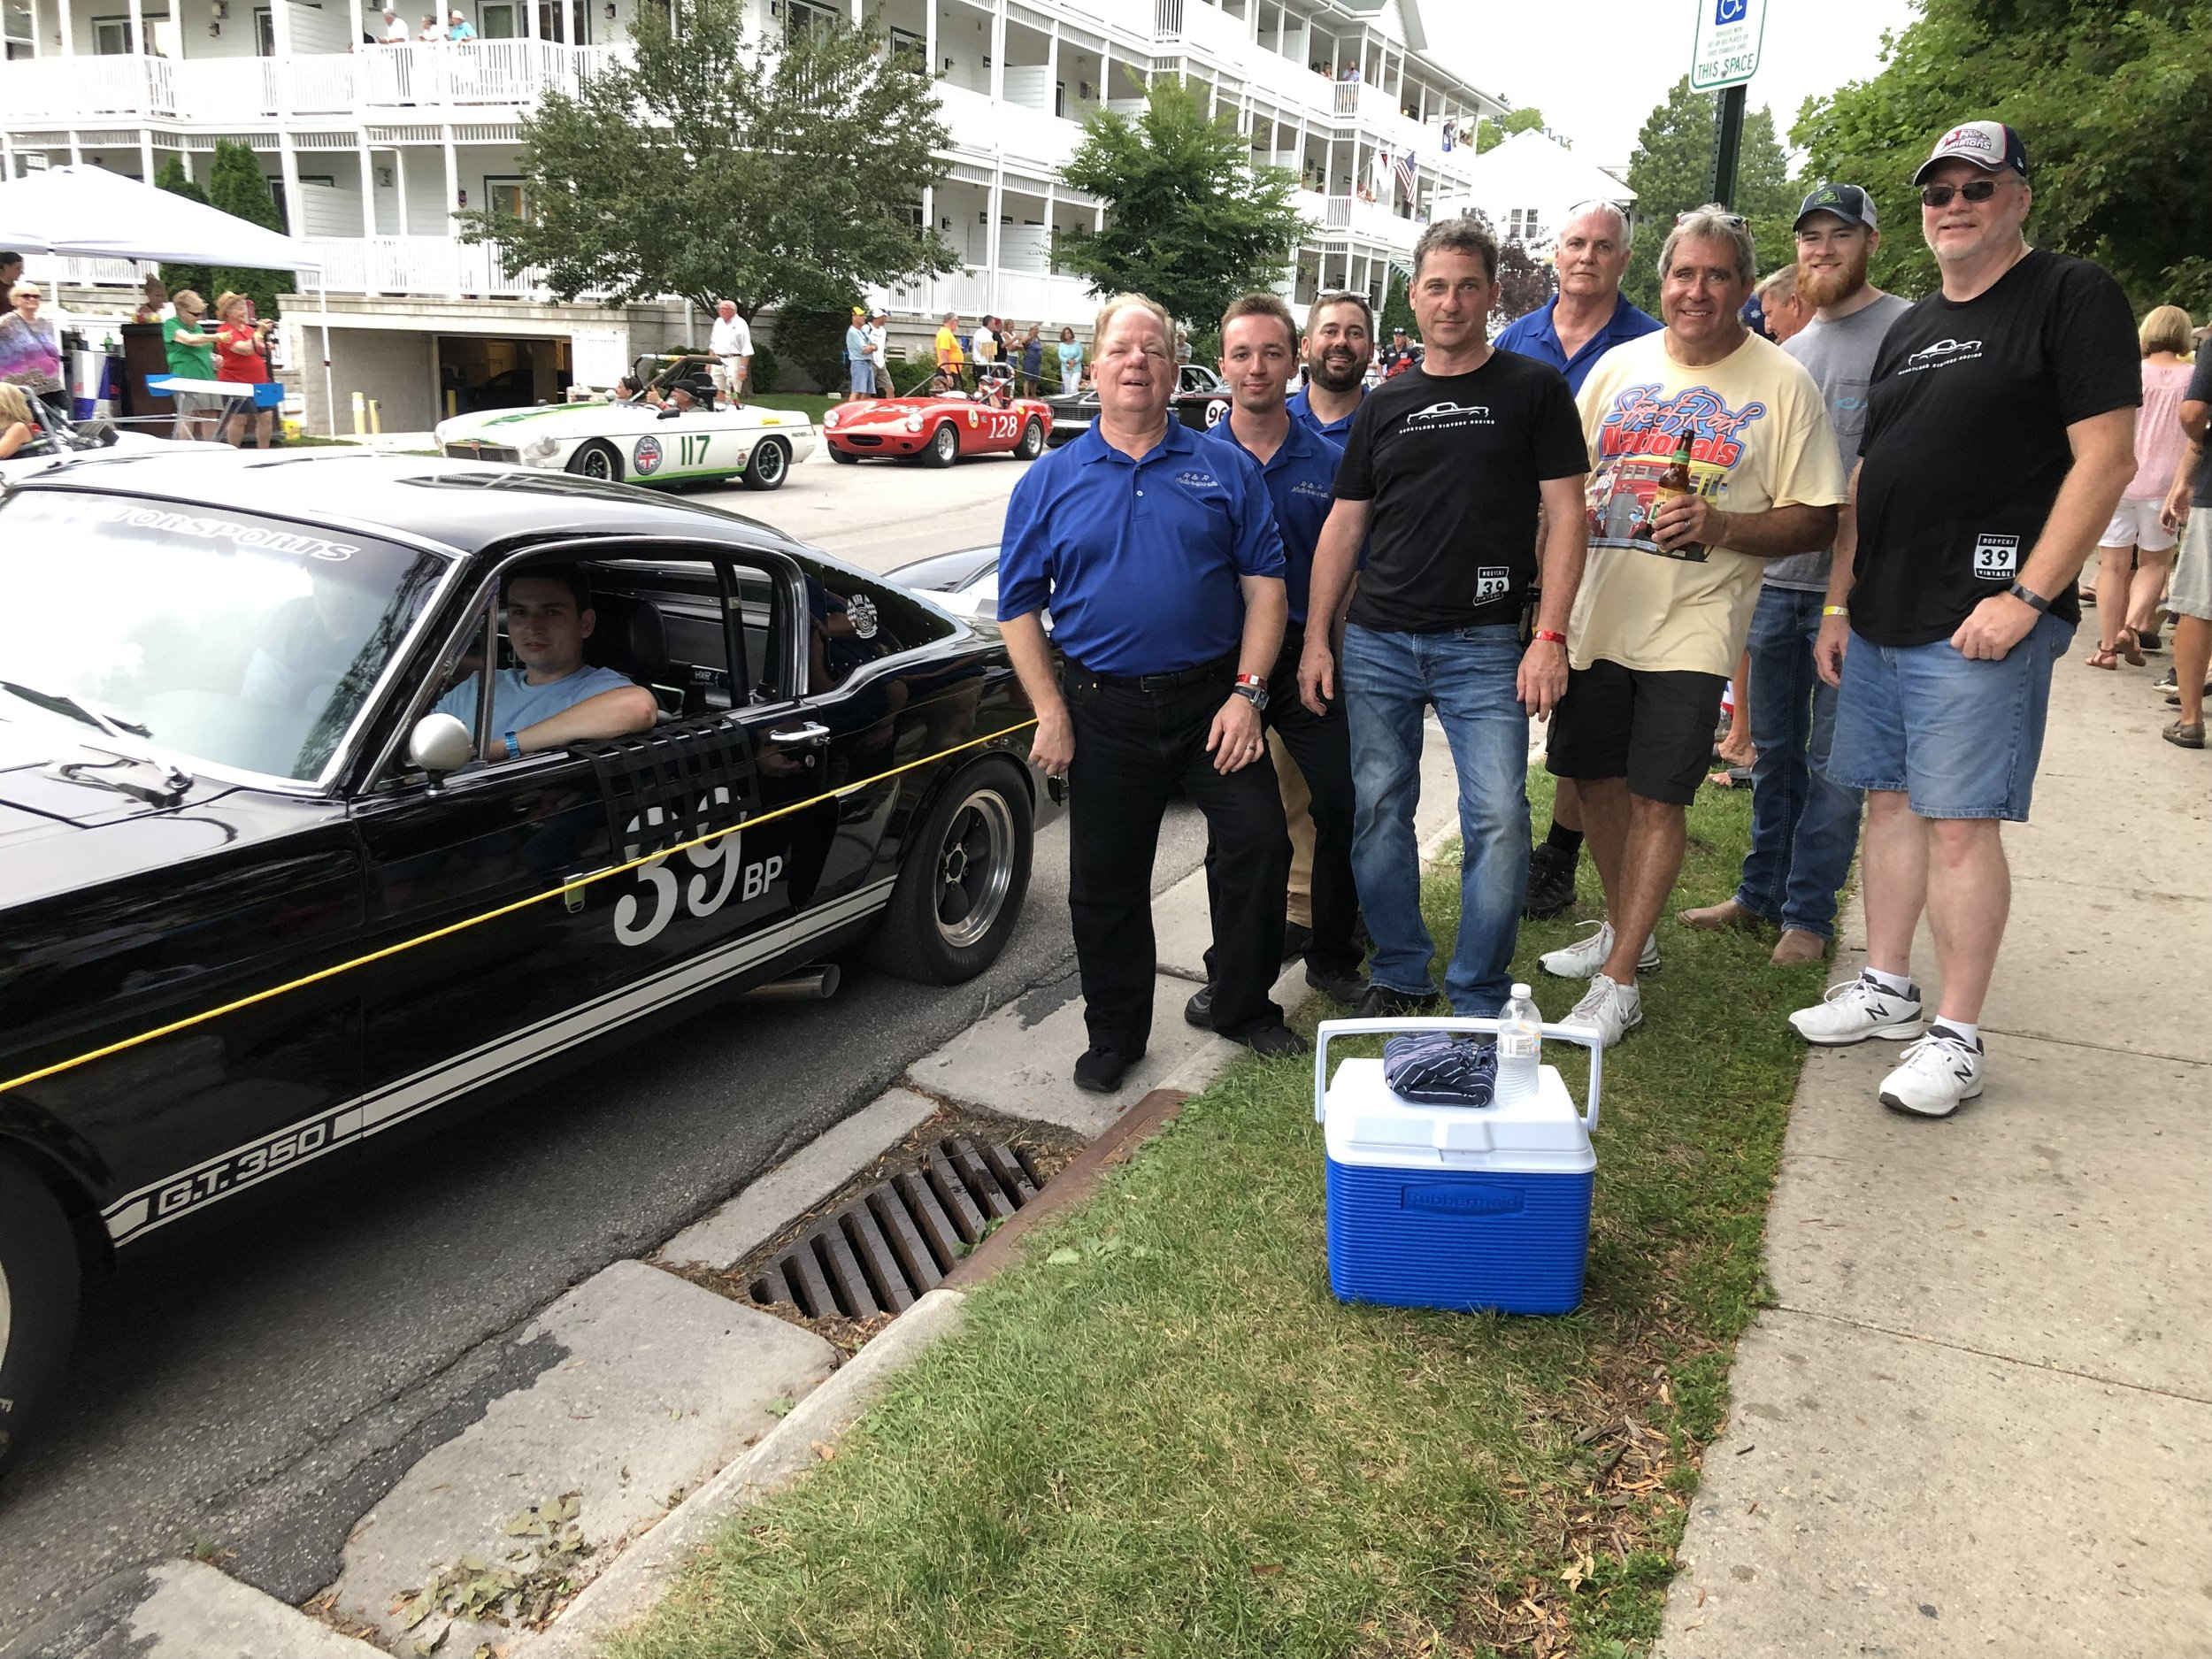 Race crew, Ray Bonthron, Will Bonthron, Brian Lein, myslef, DD, Bruce Wibracht, Jack Ilemann and Wayne Butler enjoyed the downtown festivities